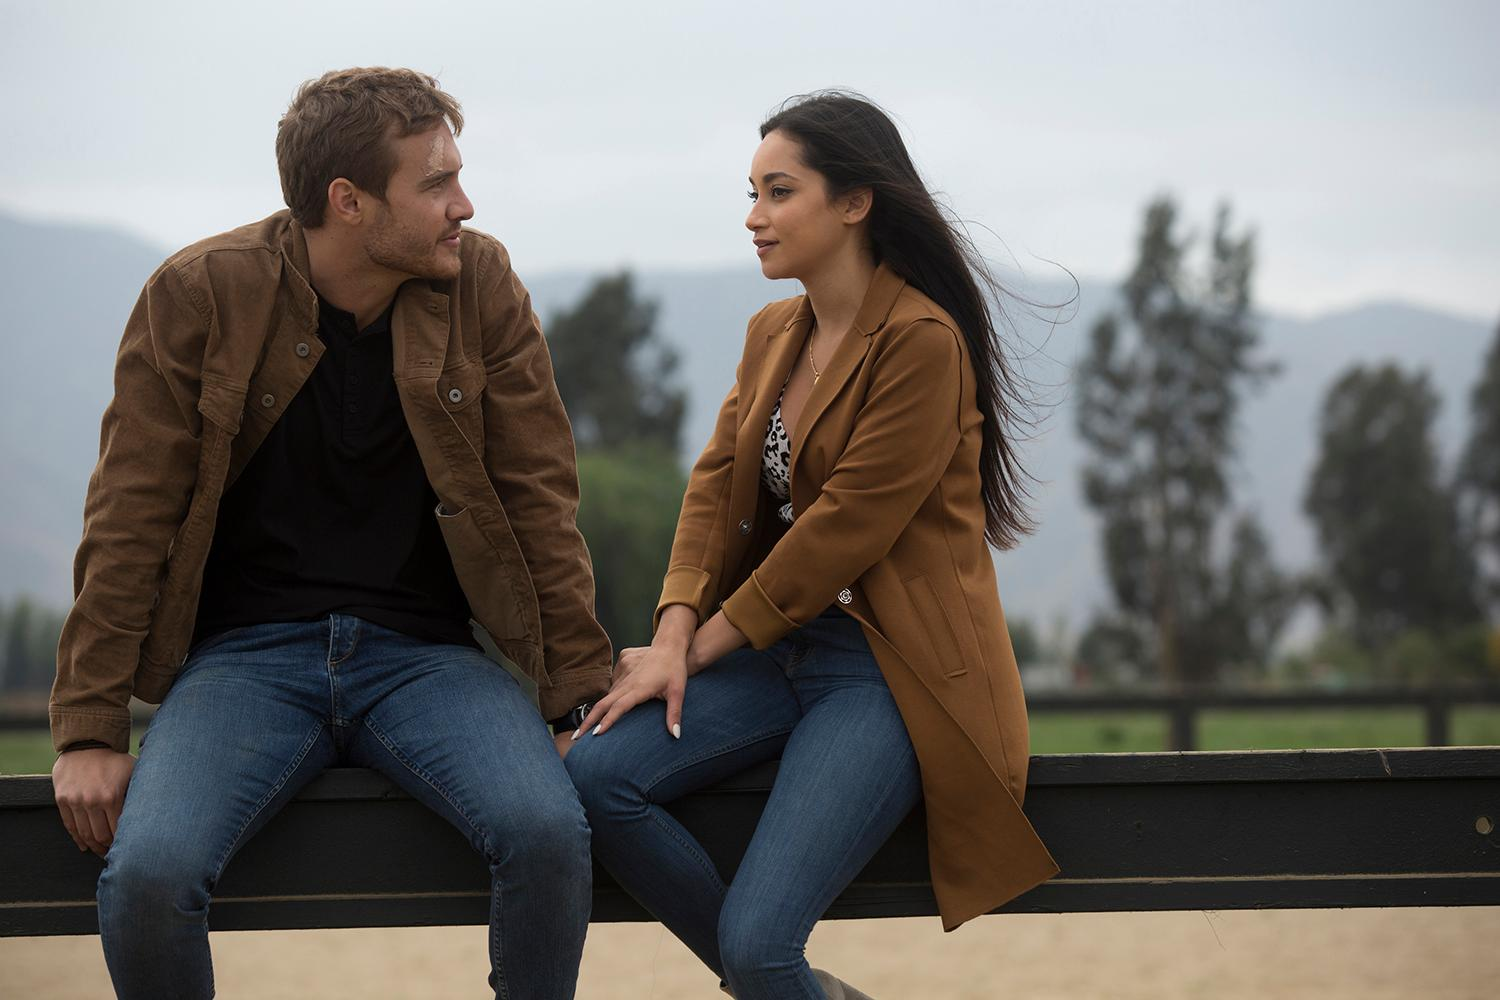 On the second explosive episode this week, airing on a special night, WEDNESDAY, FEB. 5 (8:00-10:00 p.m. PST), on ABC, Peter will need to concentrate on his developing relationships in Santiago, the vibrant capital of Chile. His first date raises serious concerns when she reveals she has never been in love before. Can she convince Peter that she is ready to settle down and get married? Another woman is getting a second one-on-one date causing a furor with one devastated bachelorette who hasn't even had one yet. 'The Bachelor' airs on KOMO 4. (ABC/Francisco Roman)